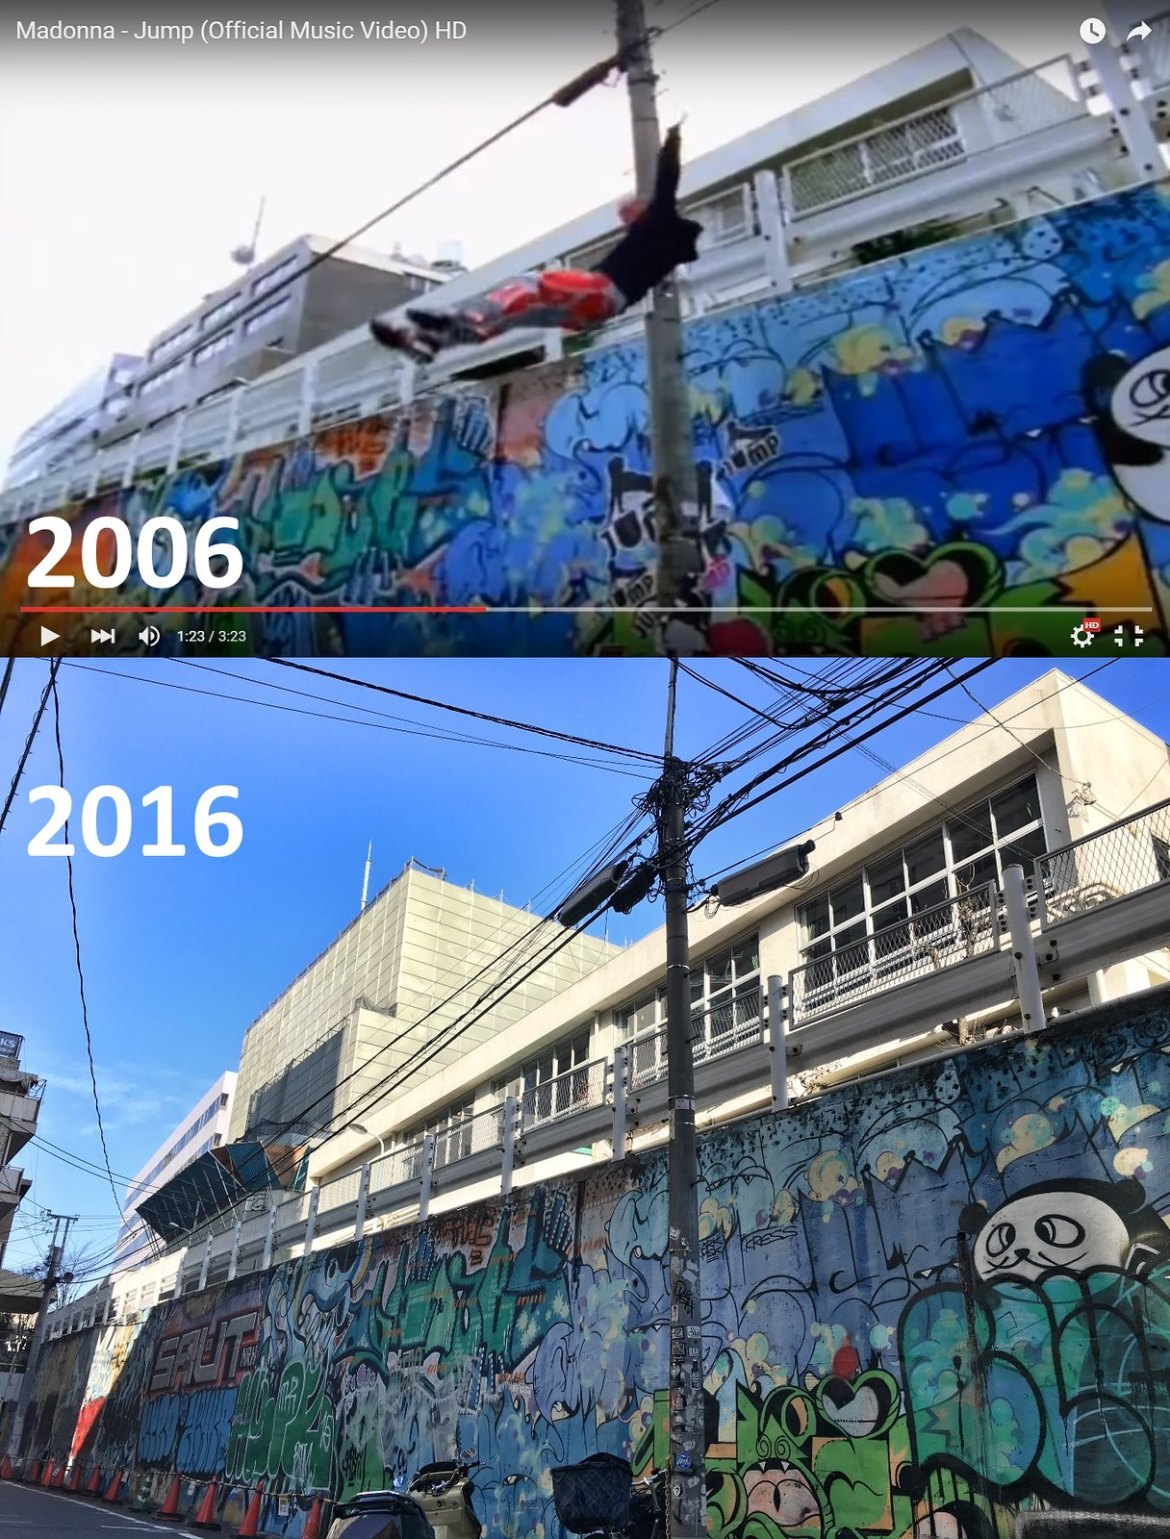 10 Years since Madonna's JUMP: 15 parkour locations of Shibuya